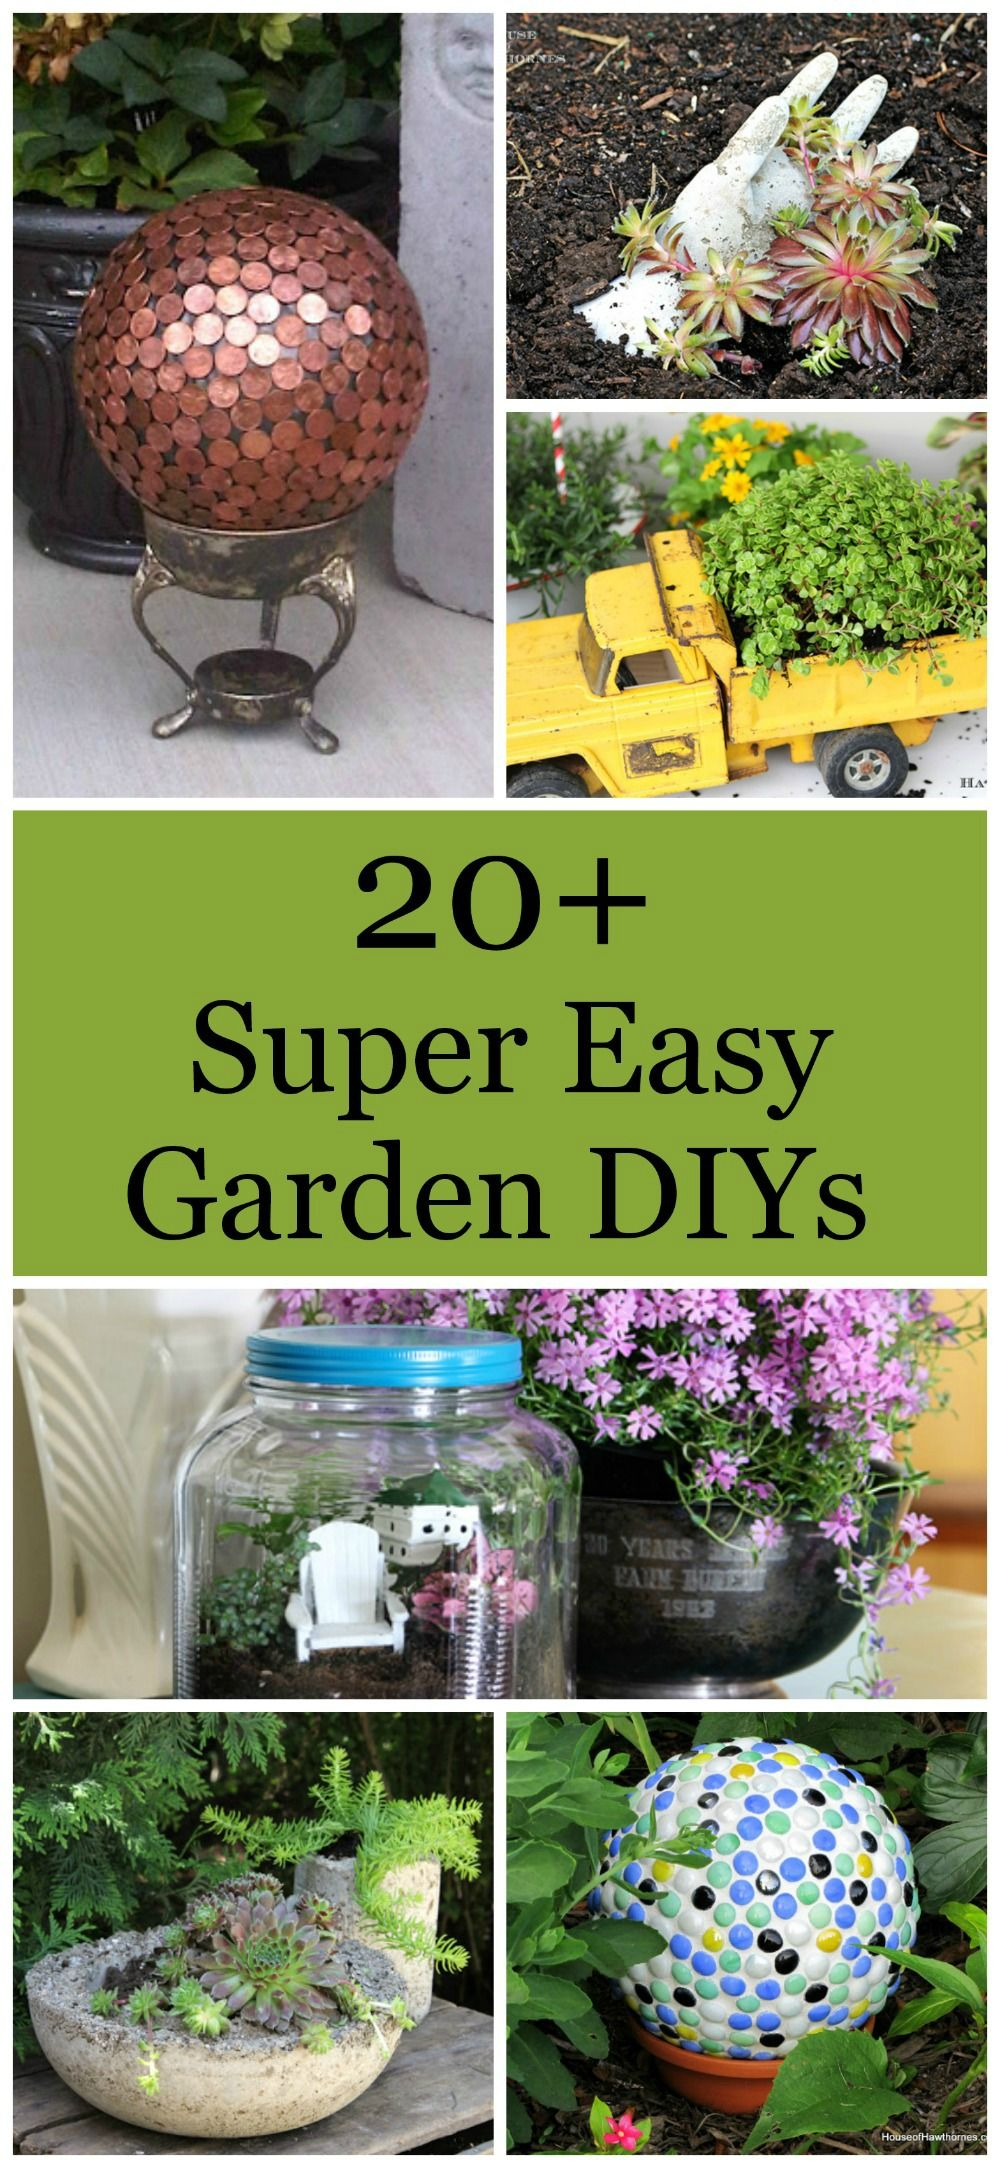 Diy Garden Projects Over 20 Diy Gardening Projects That Are Super Easy And Fun To Make